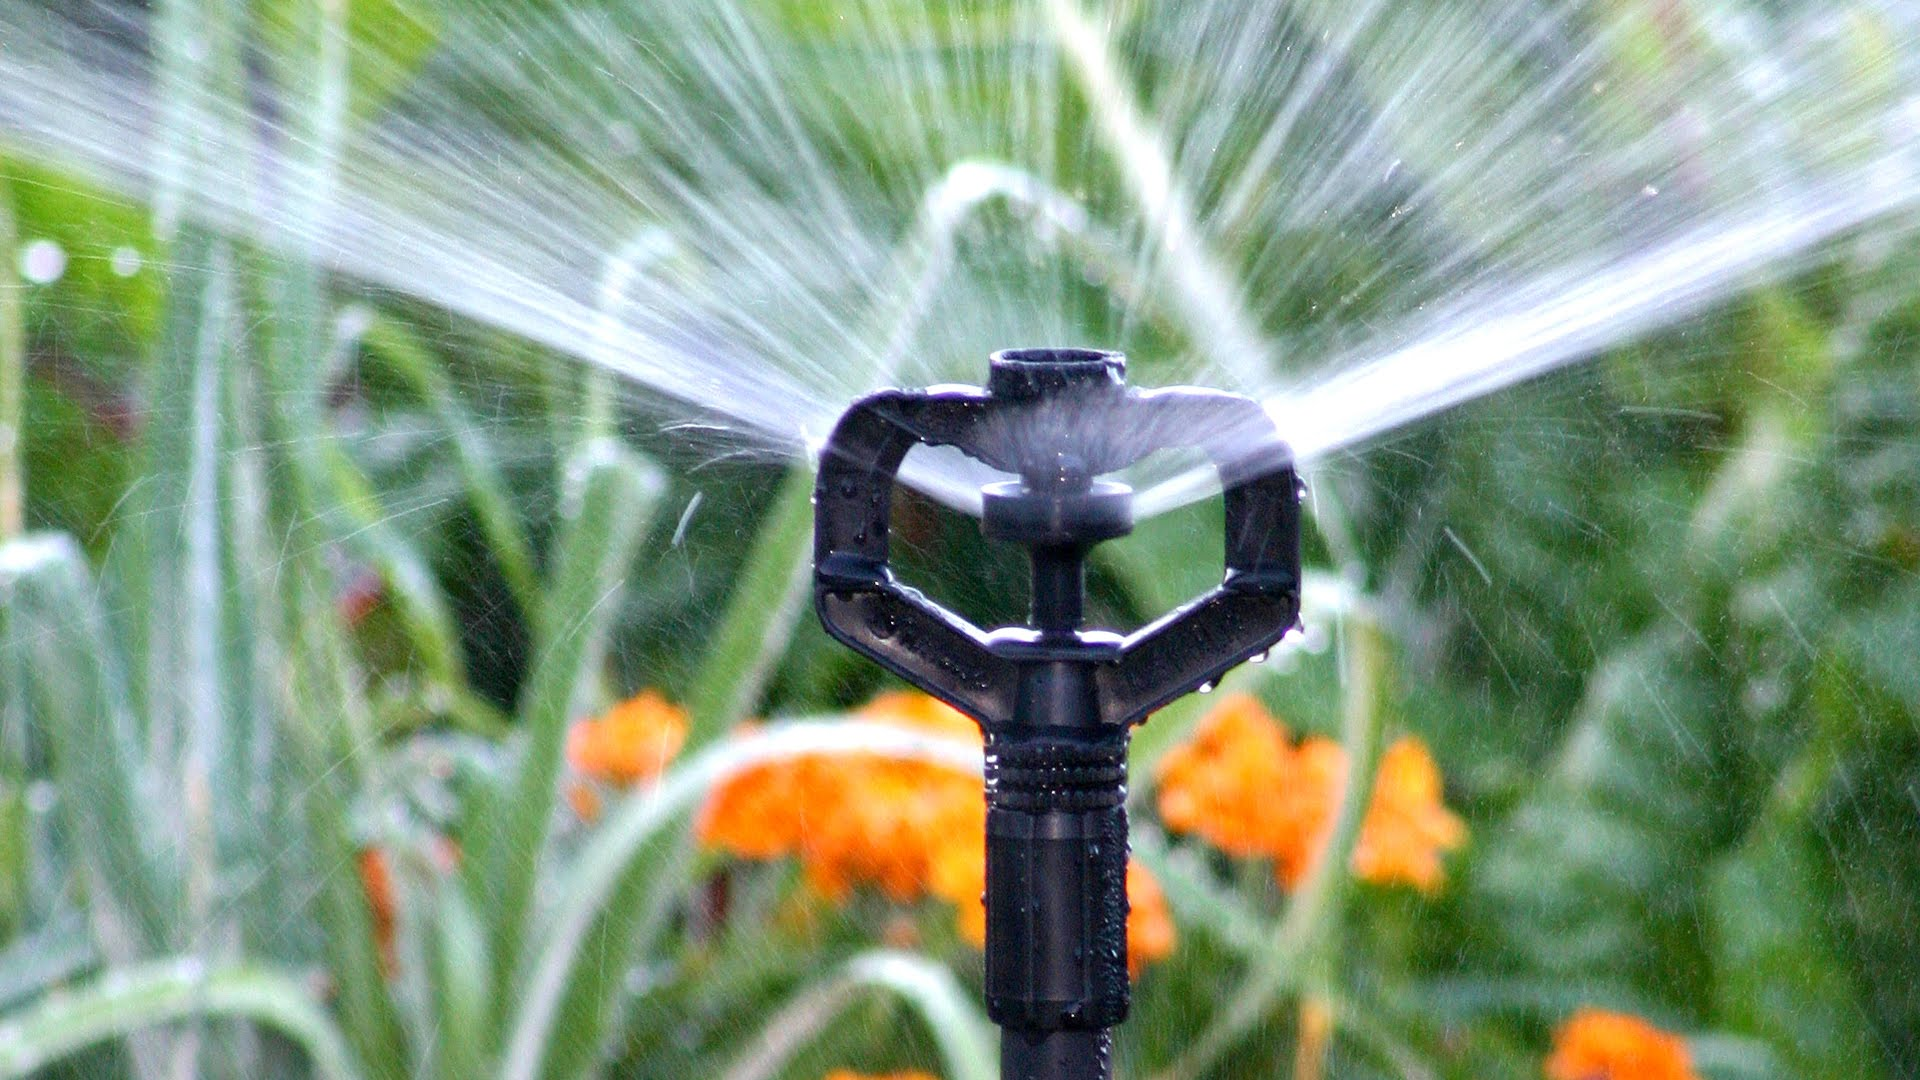 IRRIGATION ON COMMON AREAS